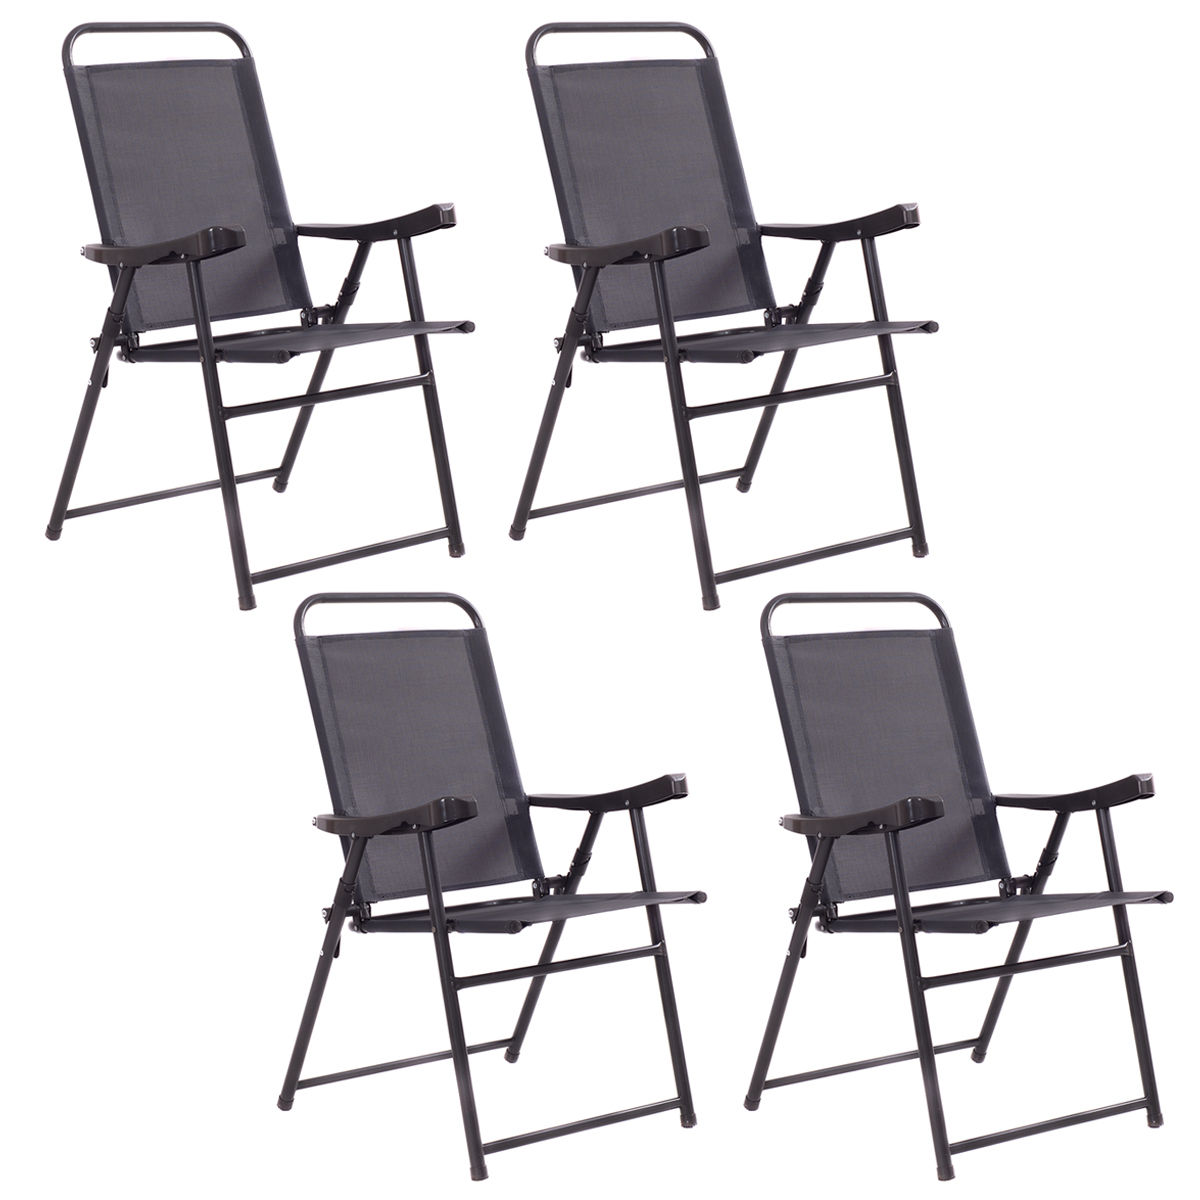 Costway Set Of 4 Folding Sling Chairs Patio Furniture